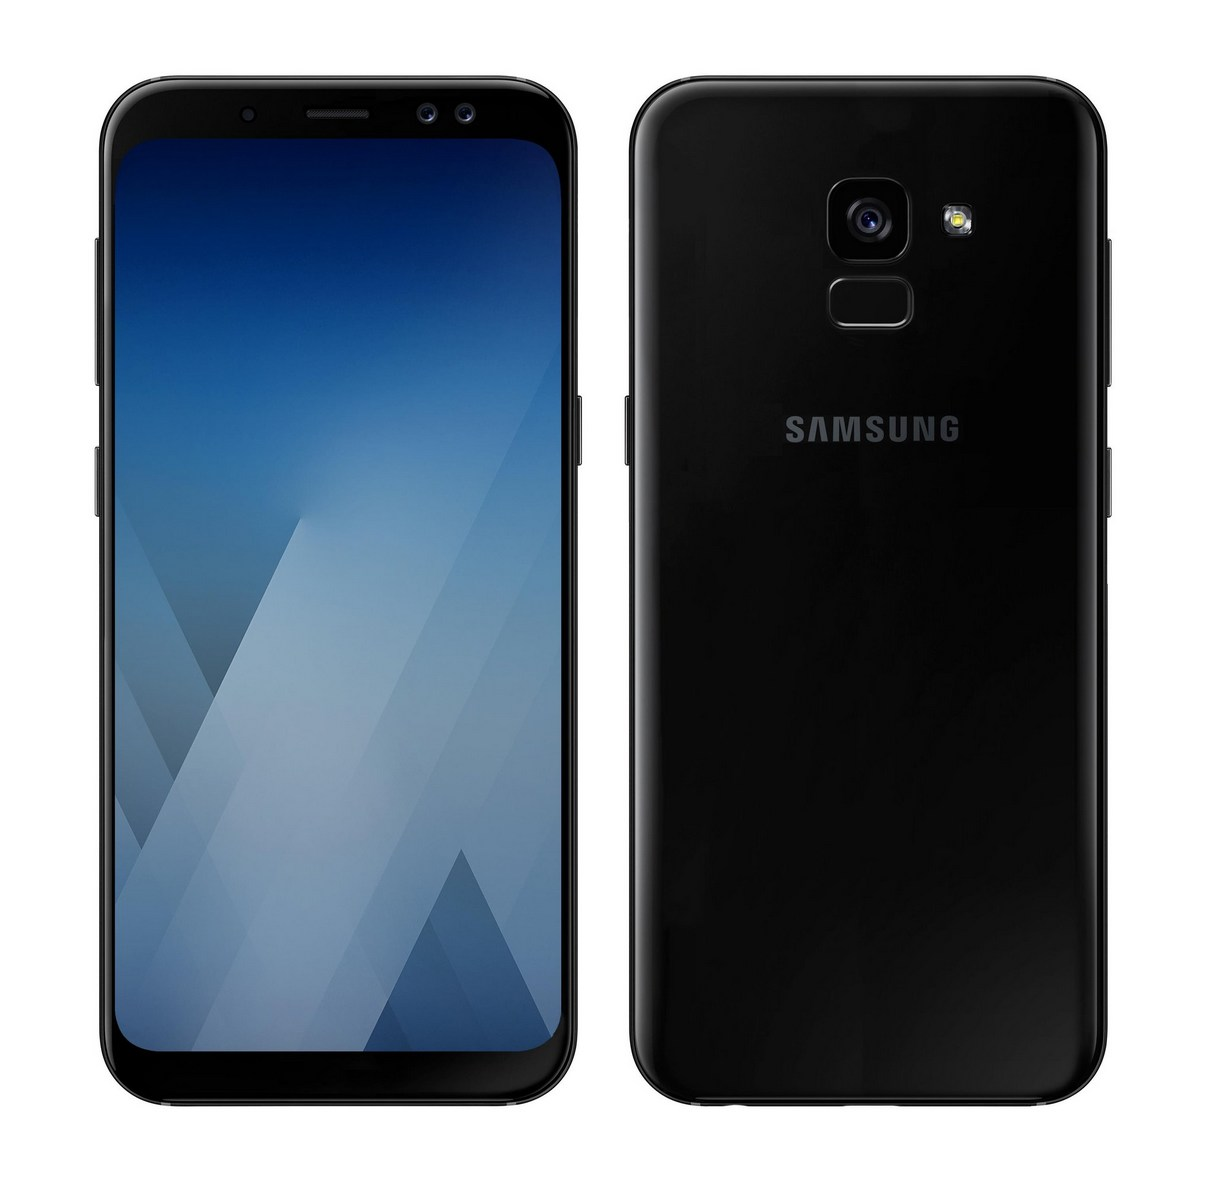 samsung galaxy a8 2018 karta microsd 128gb gratis. Black Bedroom Furniture Sets. Home Design Ideas